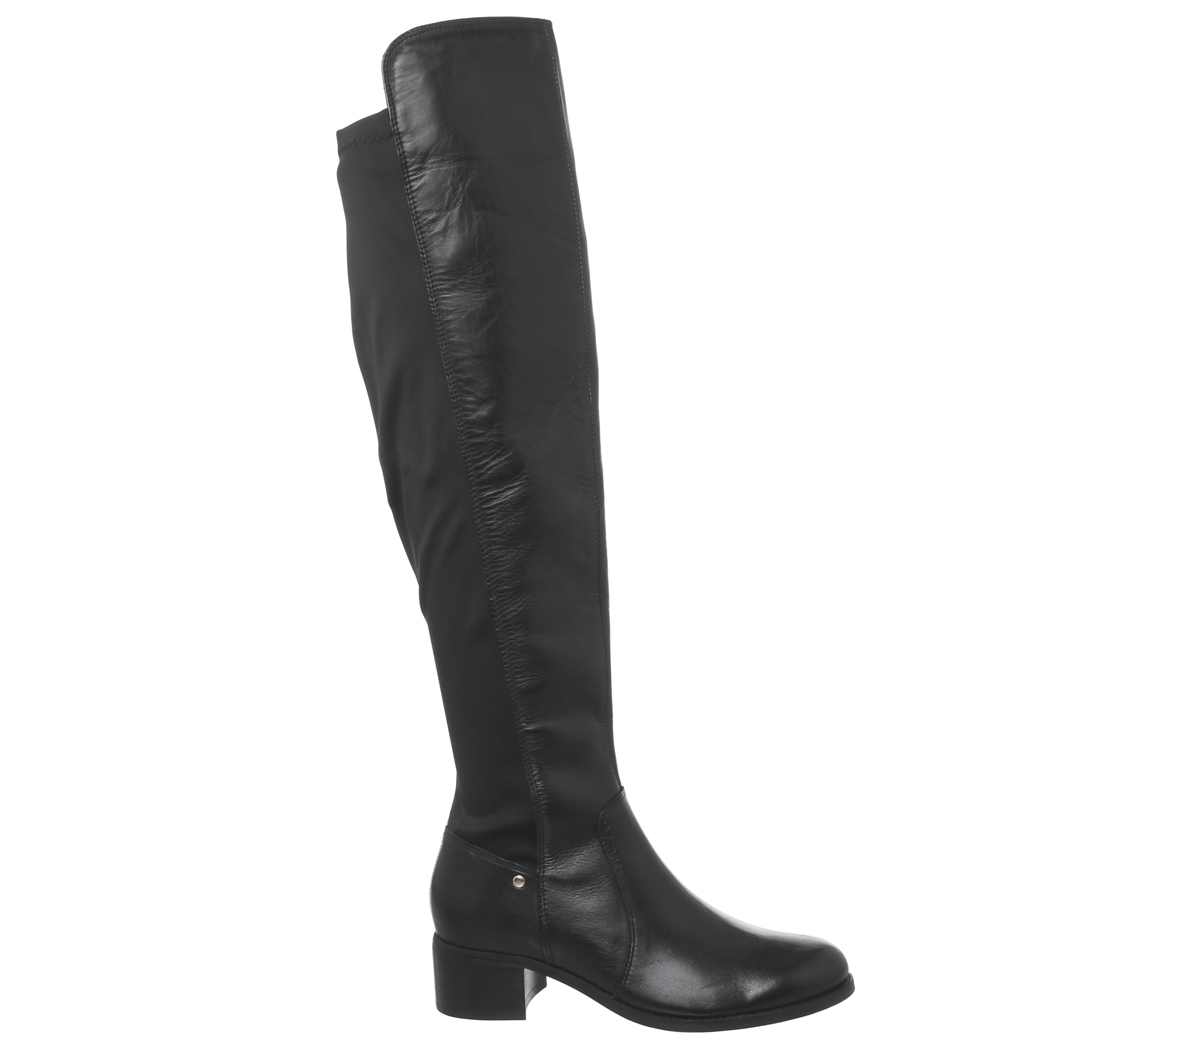 Womens in Over The nera Back Office pelle Kite Knee Stretch Boots rqCwrZxSU